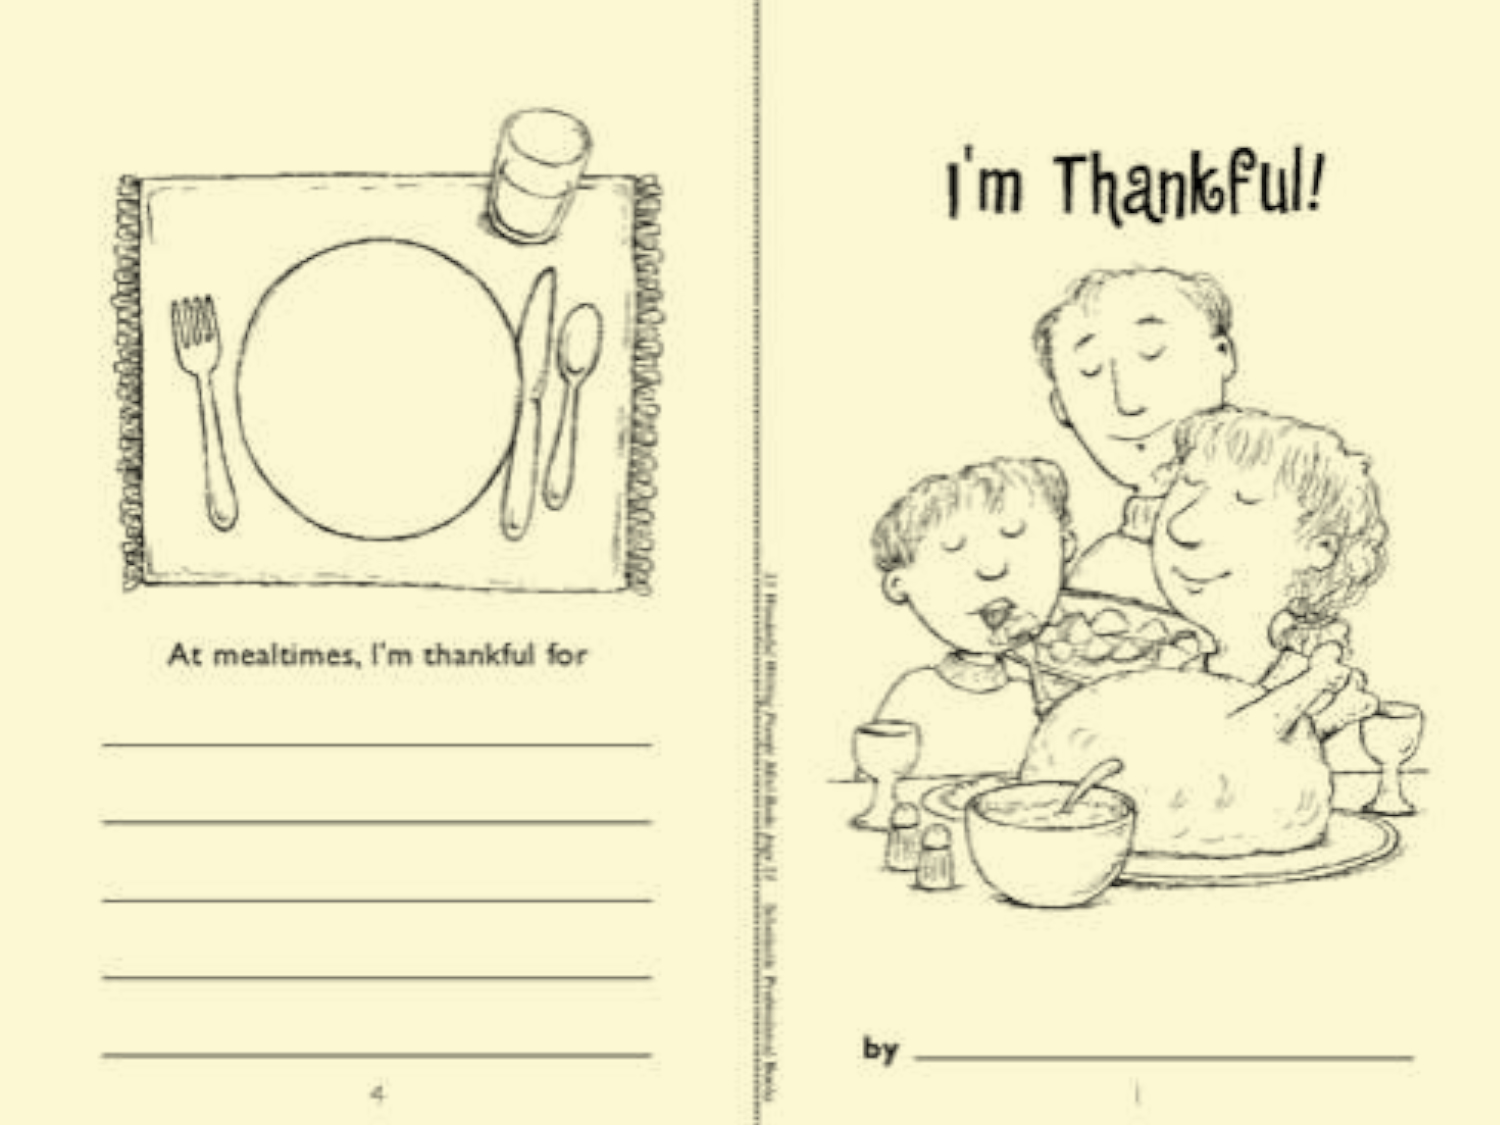 image about Thankful Printable referred to as Minibook: Im Grateful Worksheets Printables